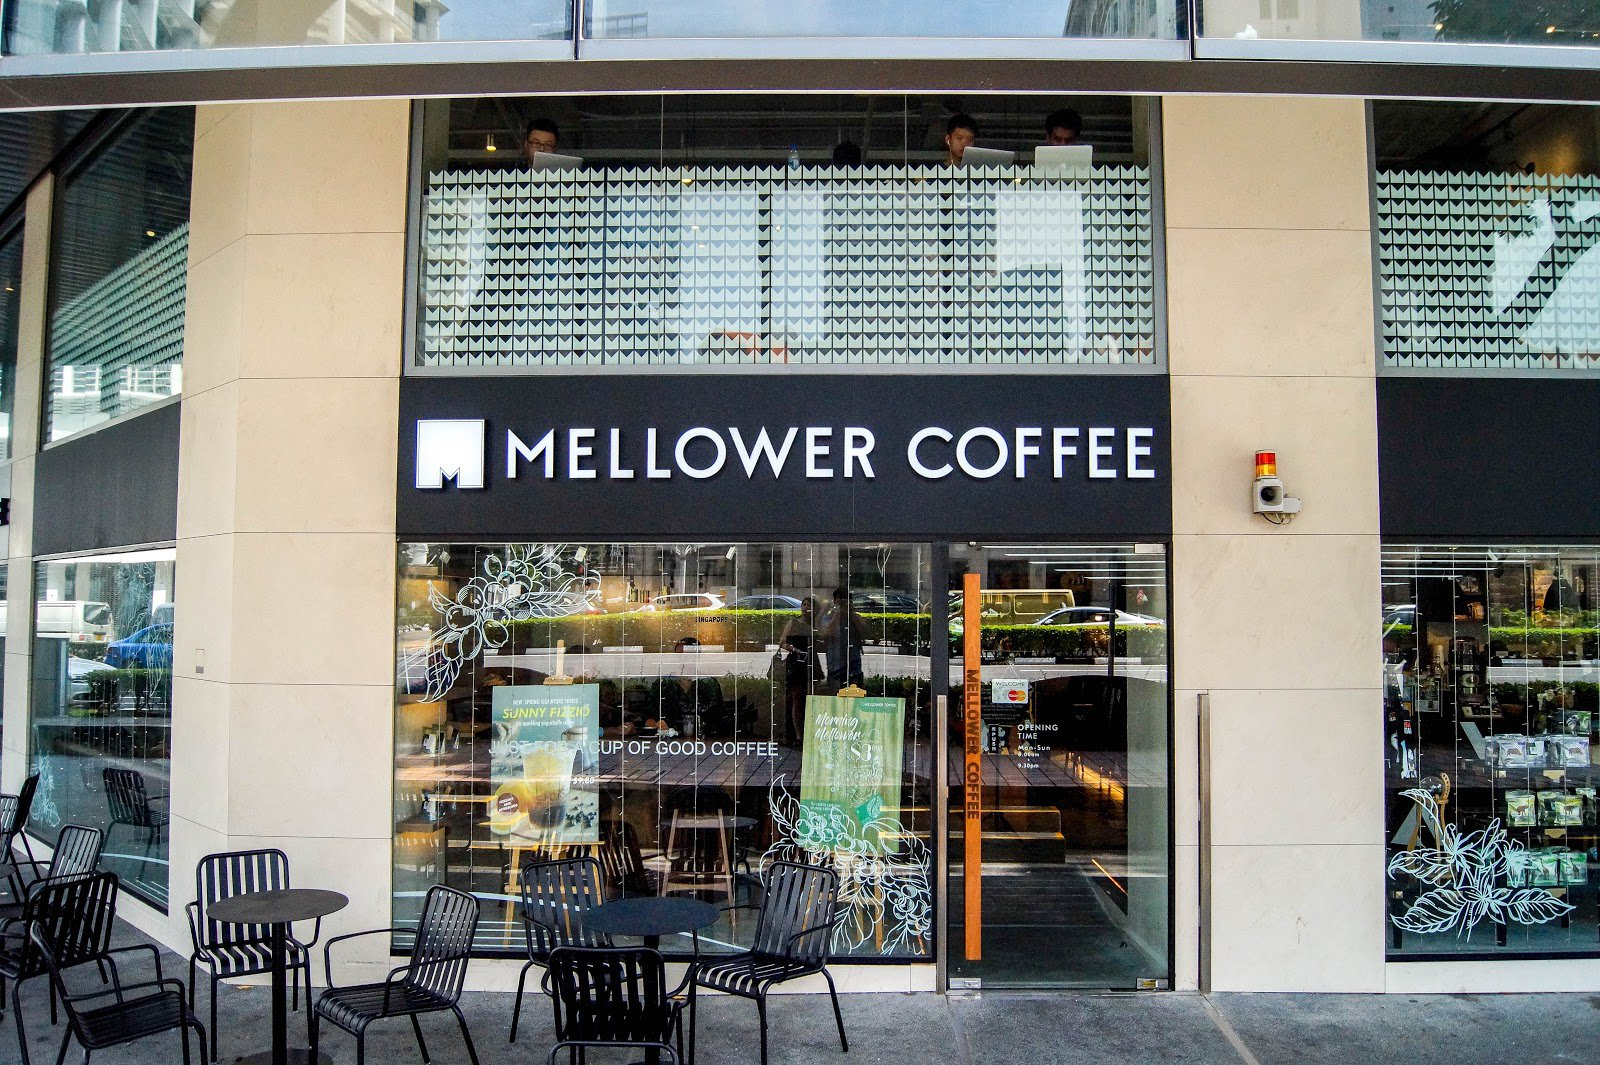 Mellower Coffee